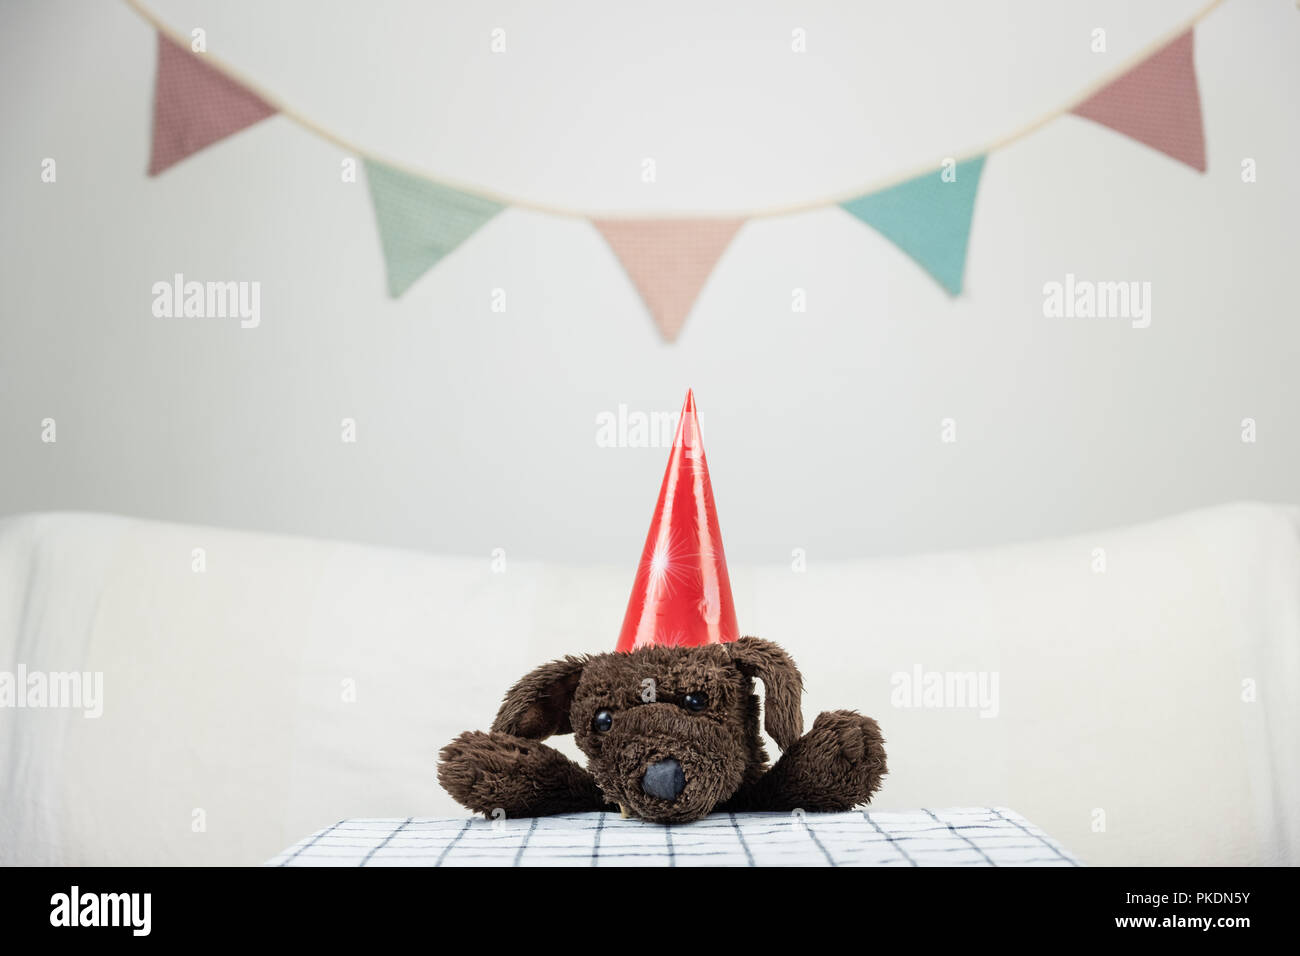 Children party concept with fluffy toy dog at the table. - Stock Image